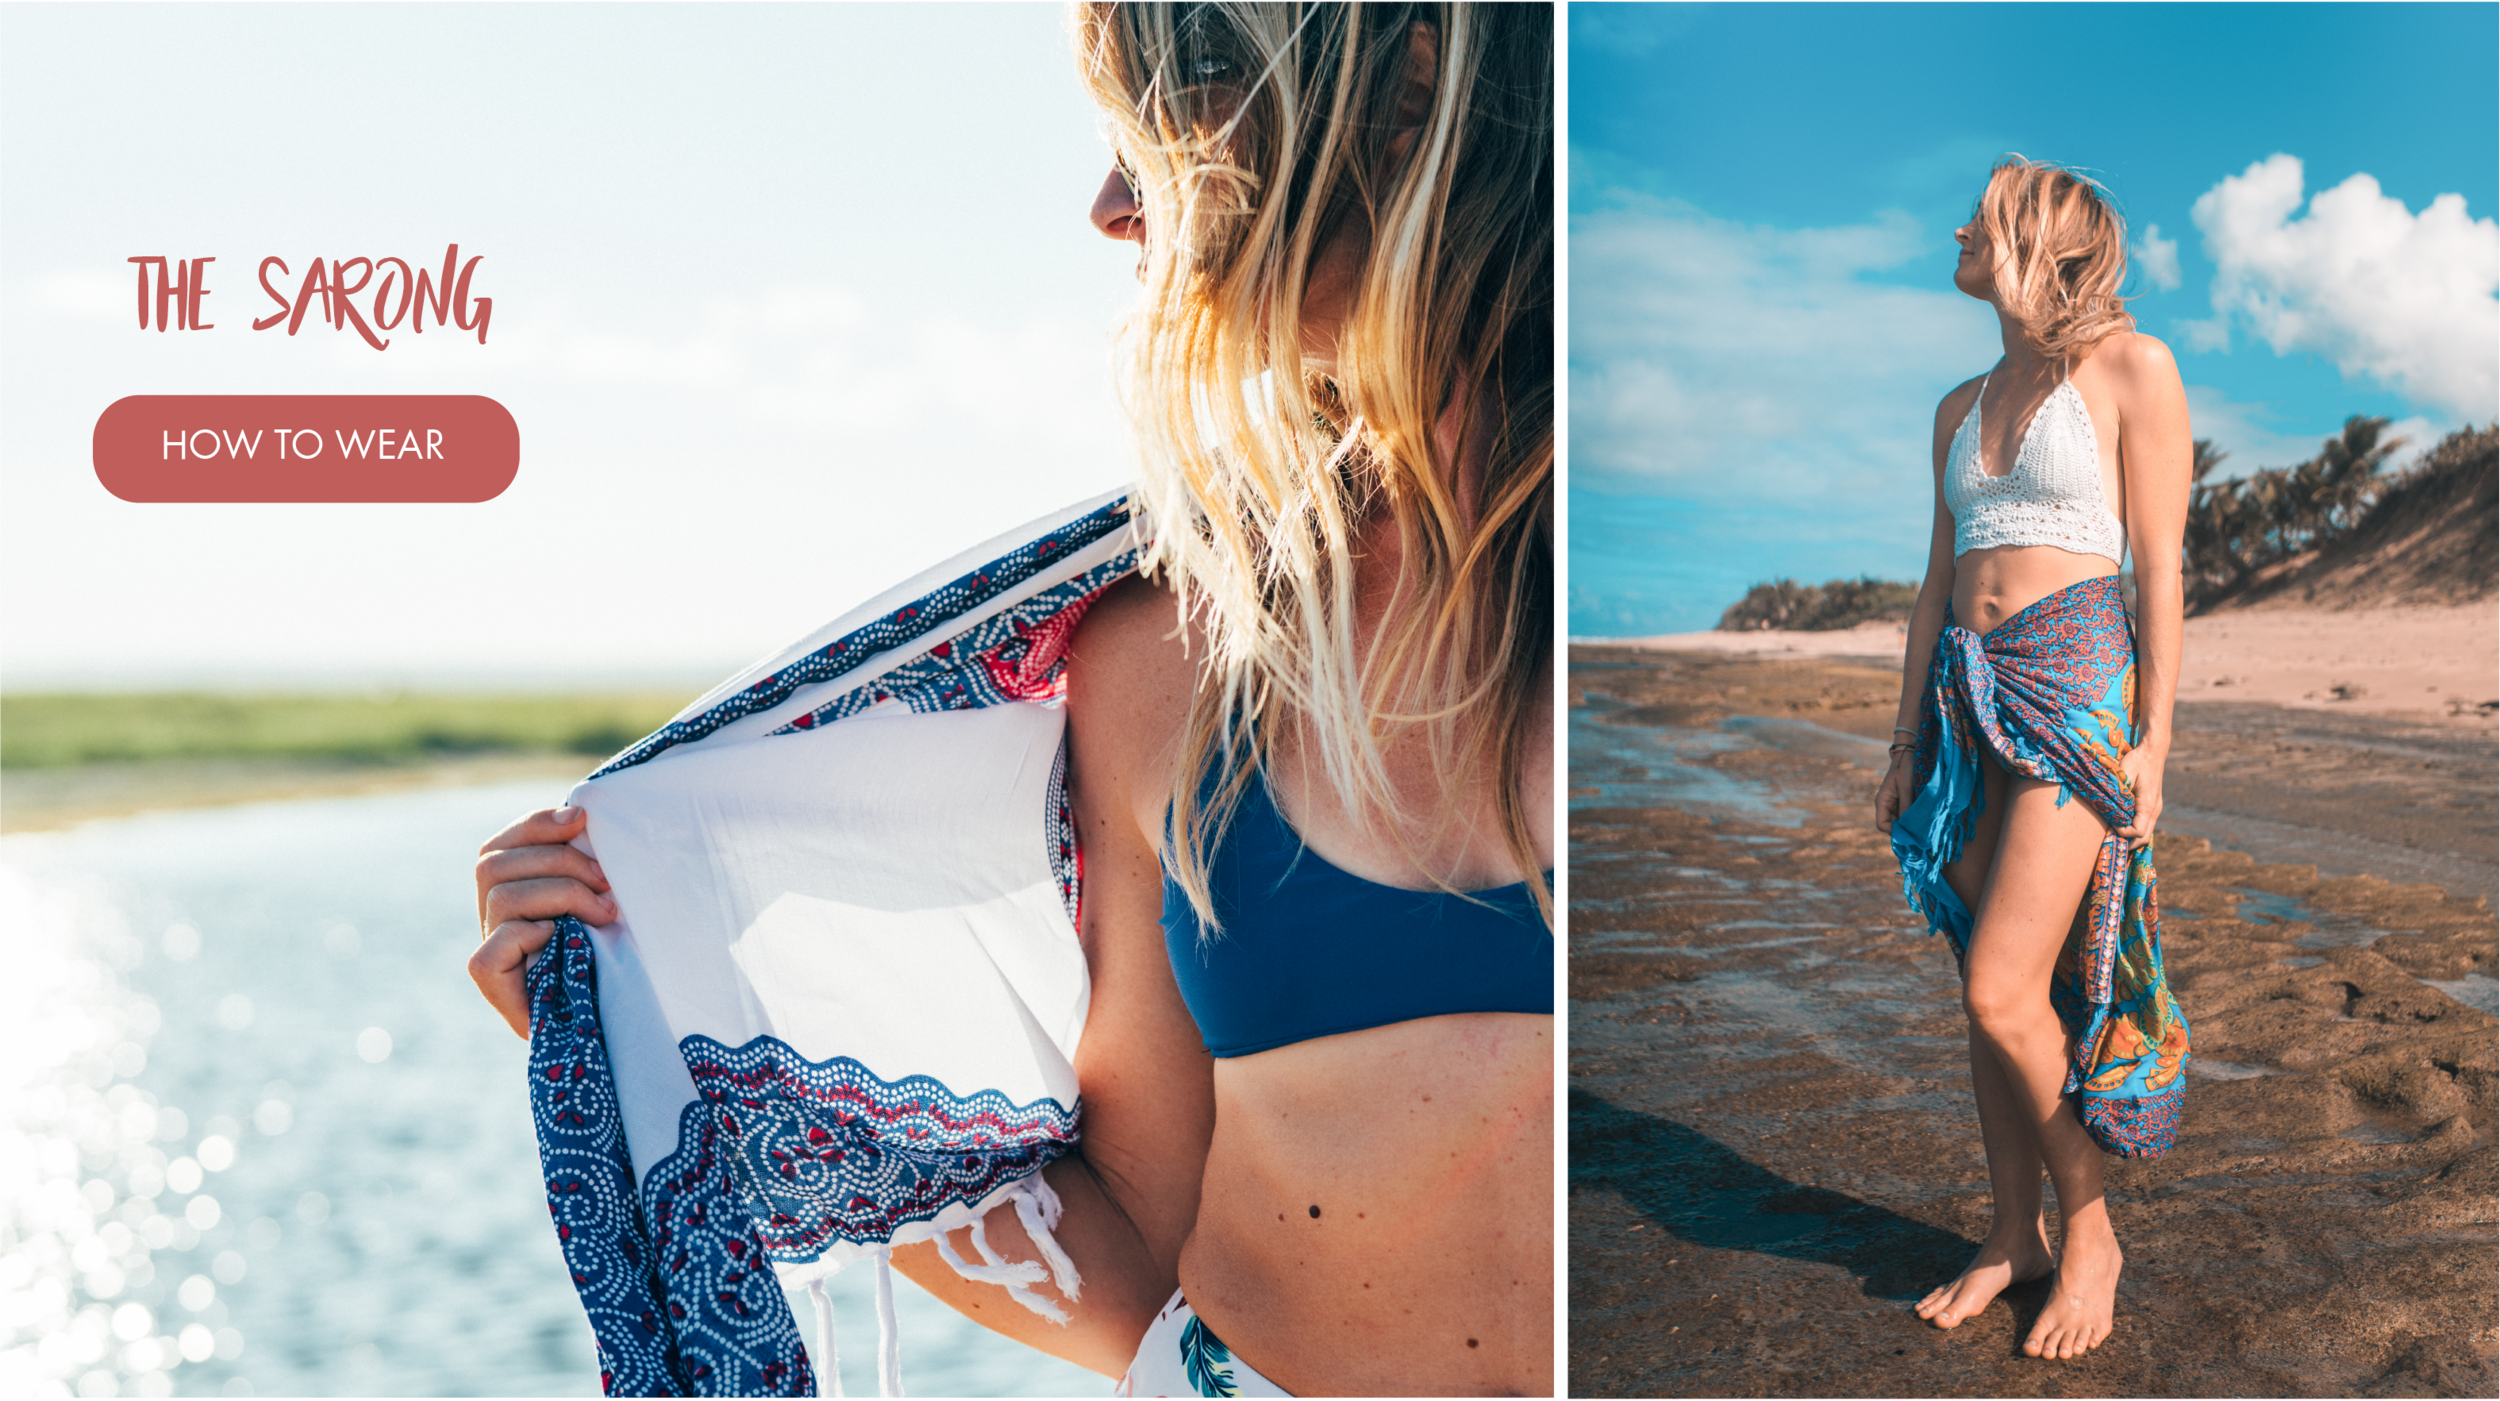 The Sarong: How to Wear